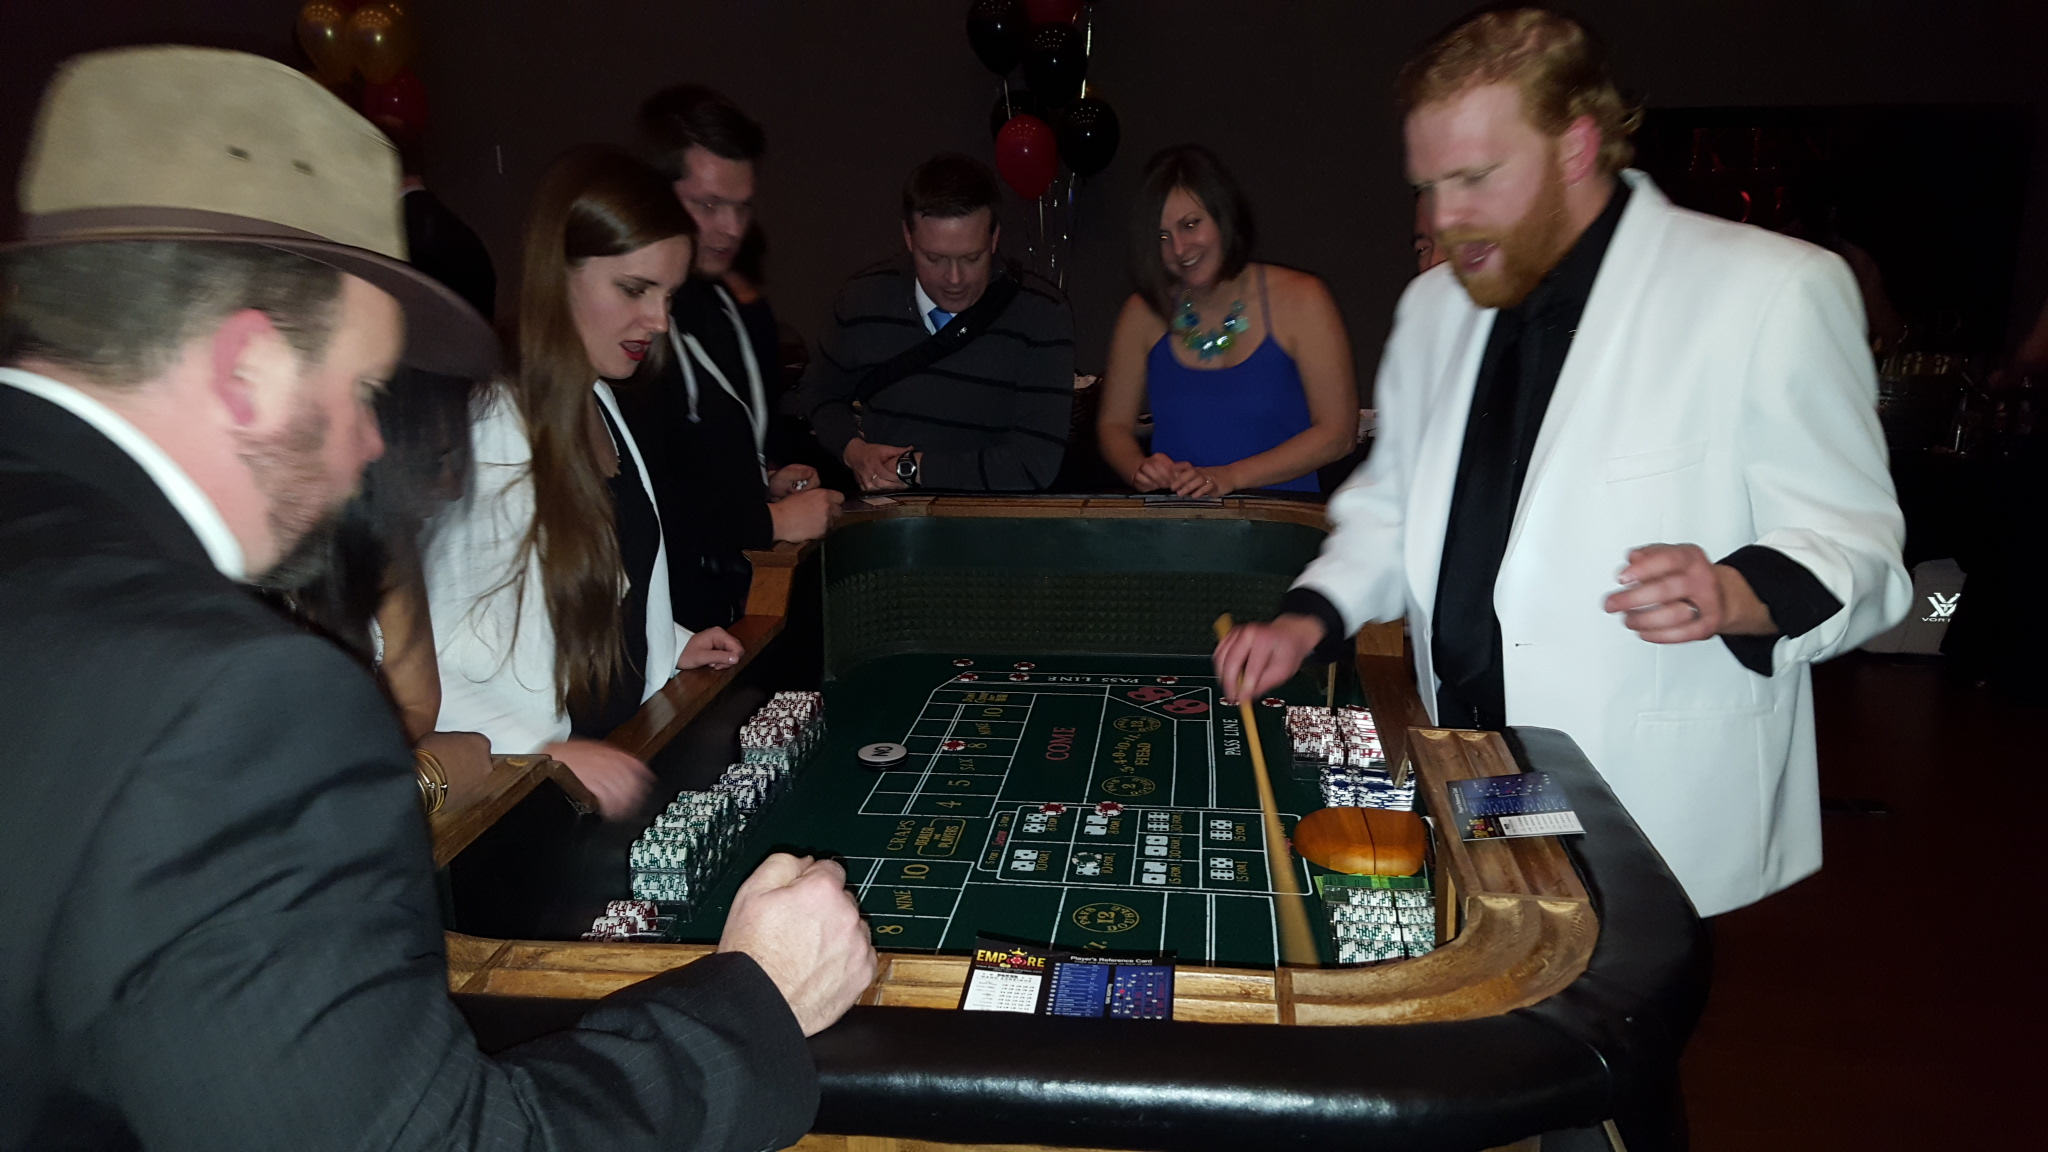 Small Sized Craps table